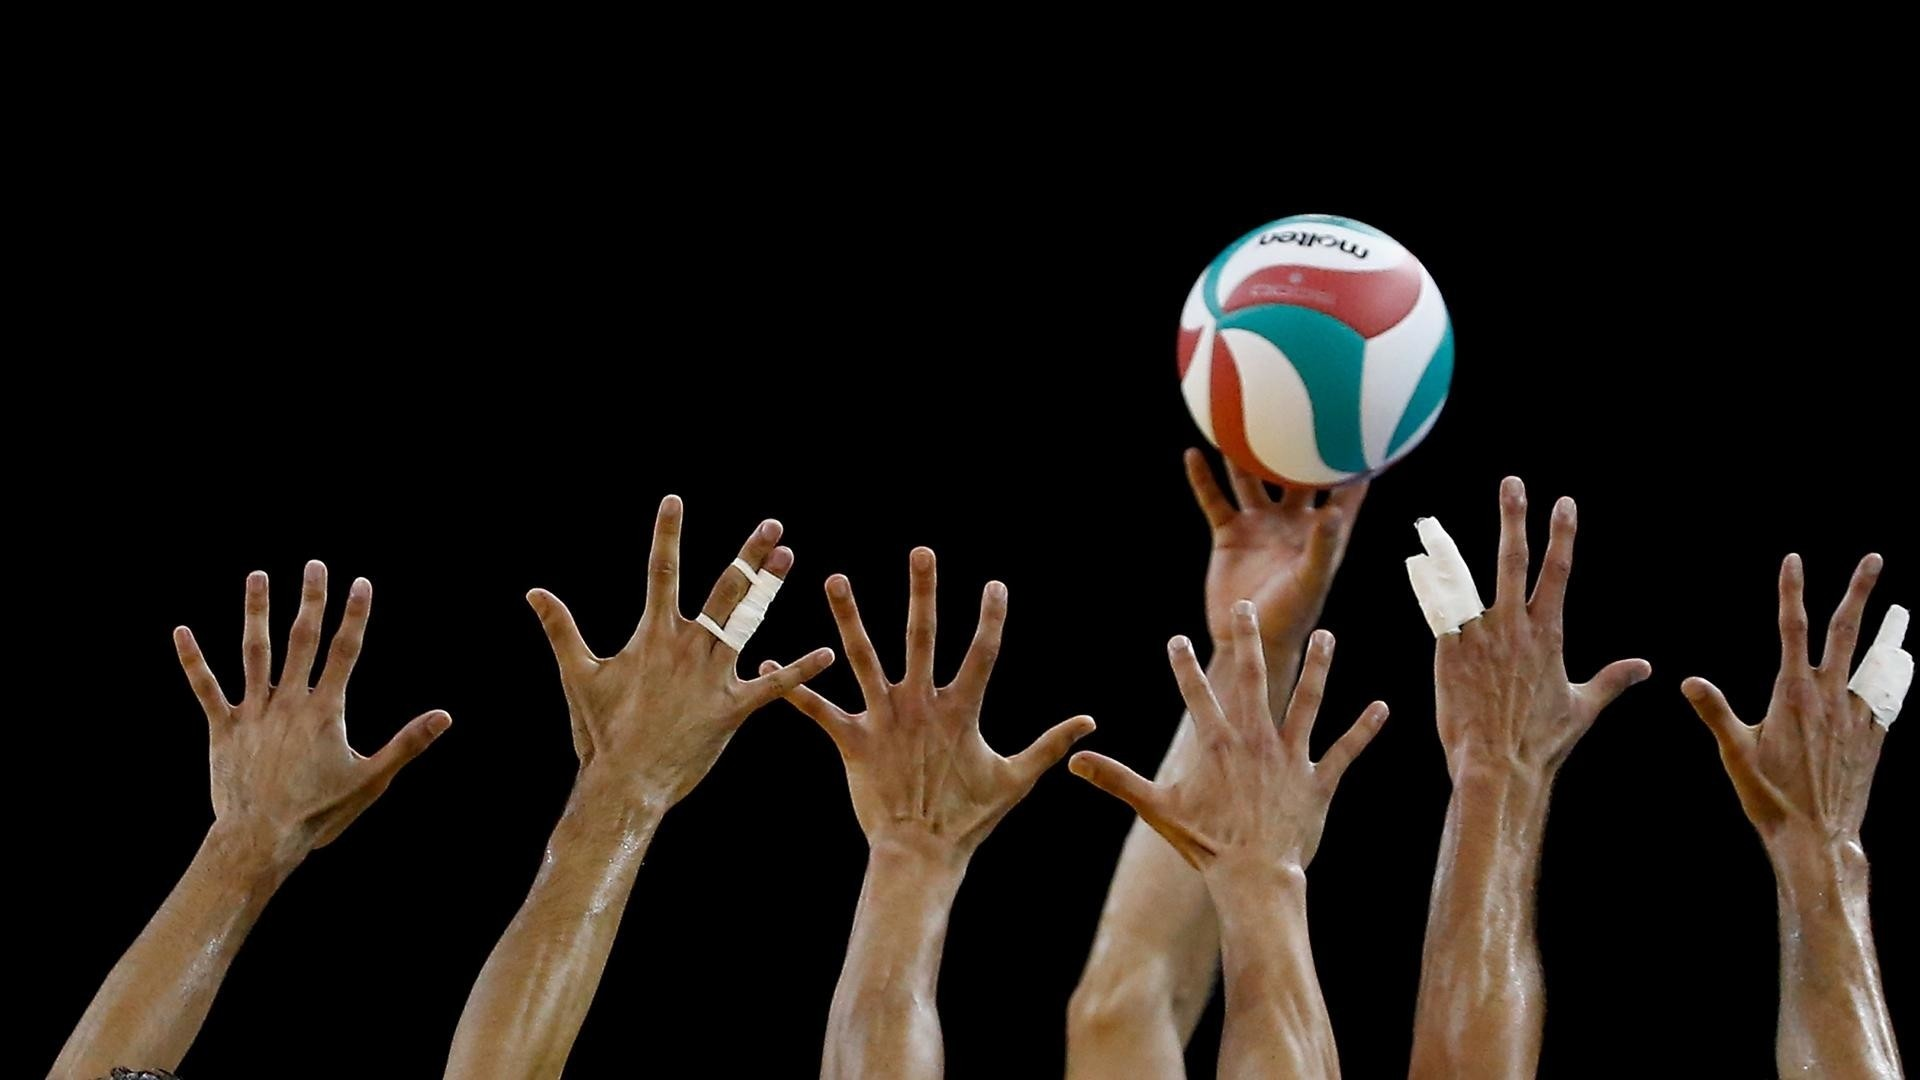 Volleyball Wallpaper theme